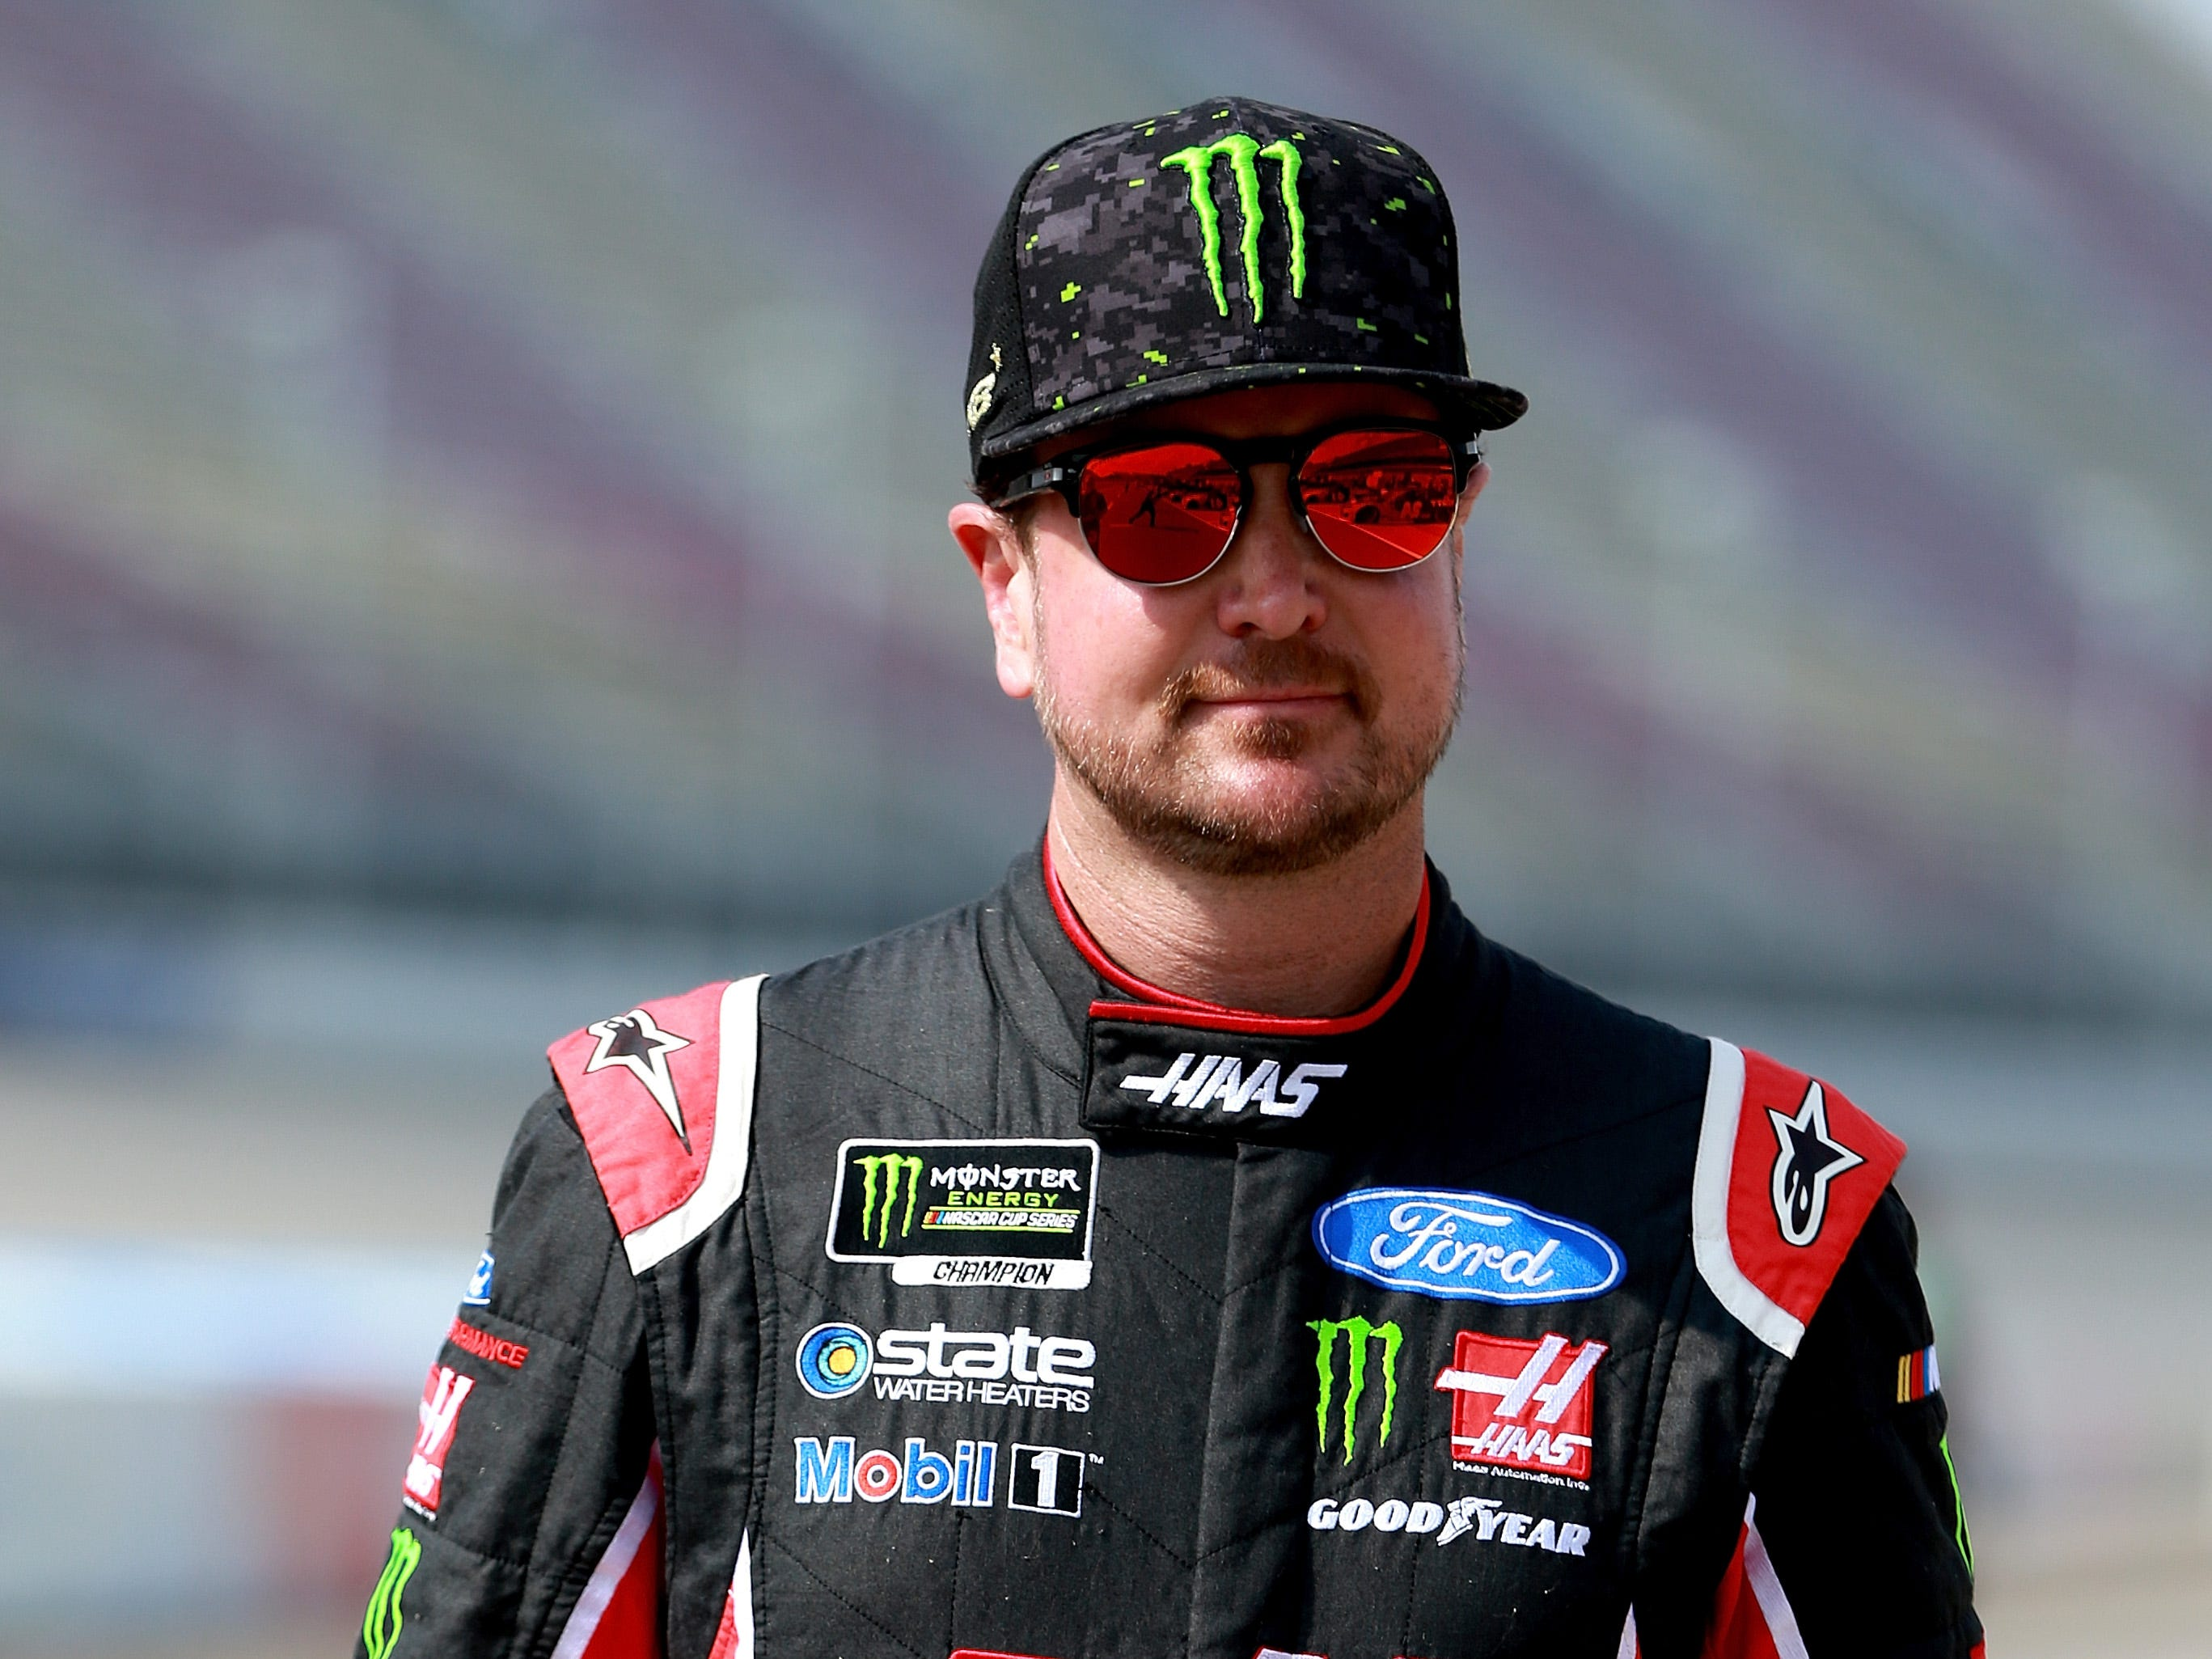 Kurt Busch, driver of the #41 Haas Automation Ford, walks on the grid during qualifying for the Monster Energy NASCAR Cup Series Consmers Energy 400 at Michigan International Speedway on August 10, 2018 in Brooklyn, Michigan.